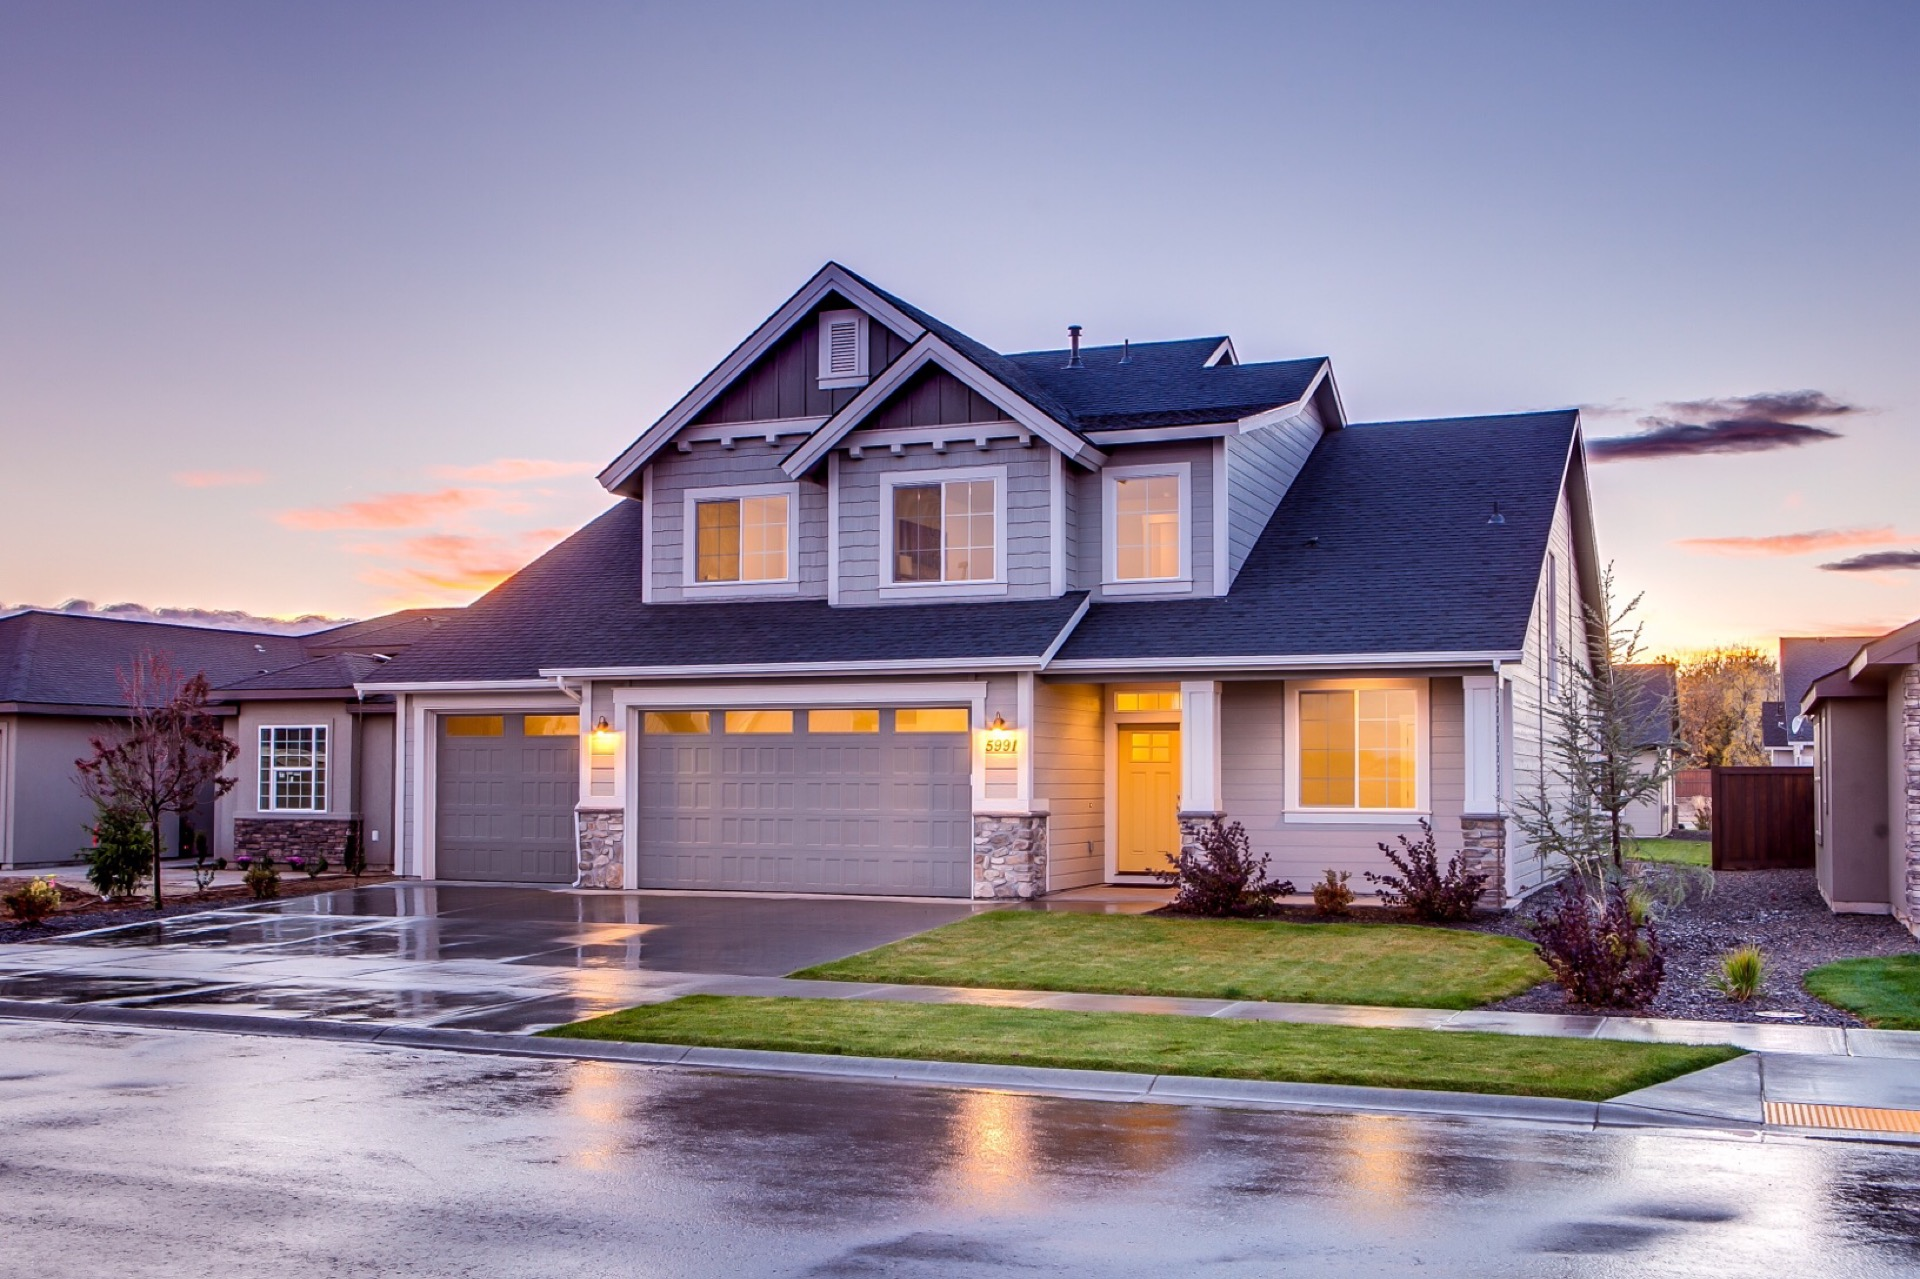 NEW HOME CONSTRUCTION - We are fully qualified to construct your architectural plans to specification.  Make your house a home, and know you are receiving high level support services and materials.